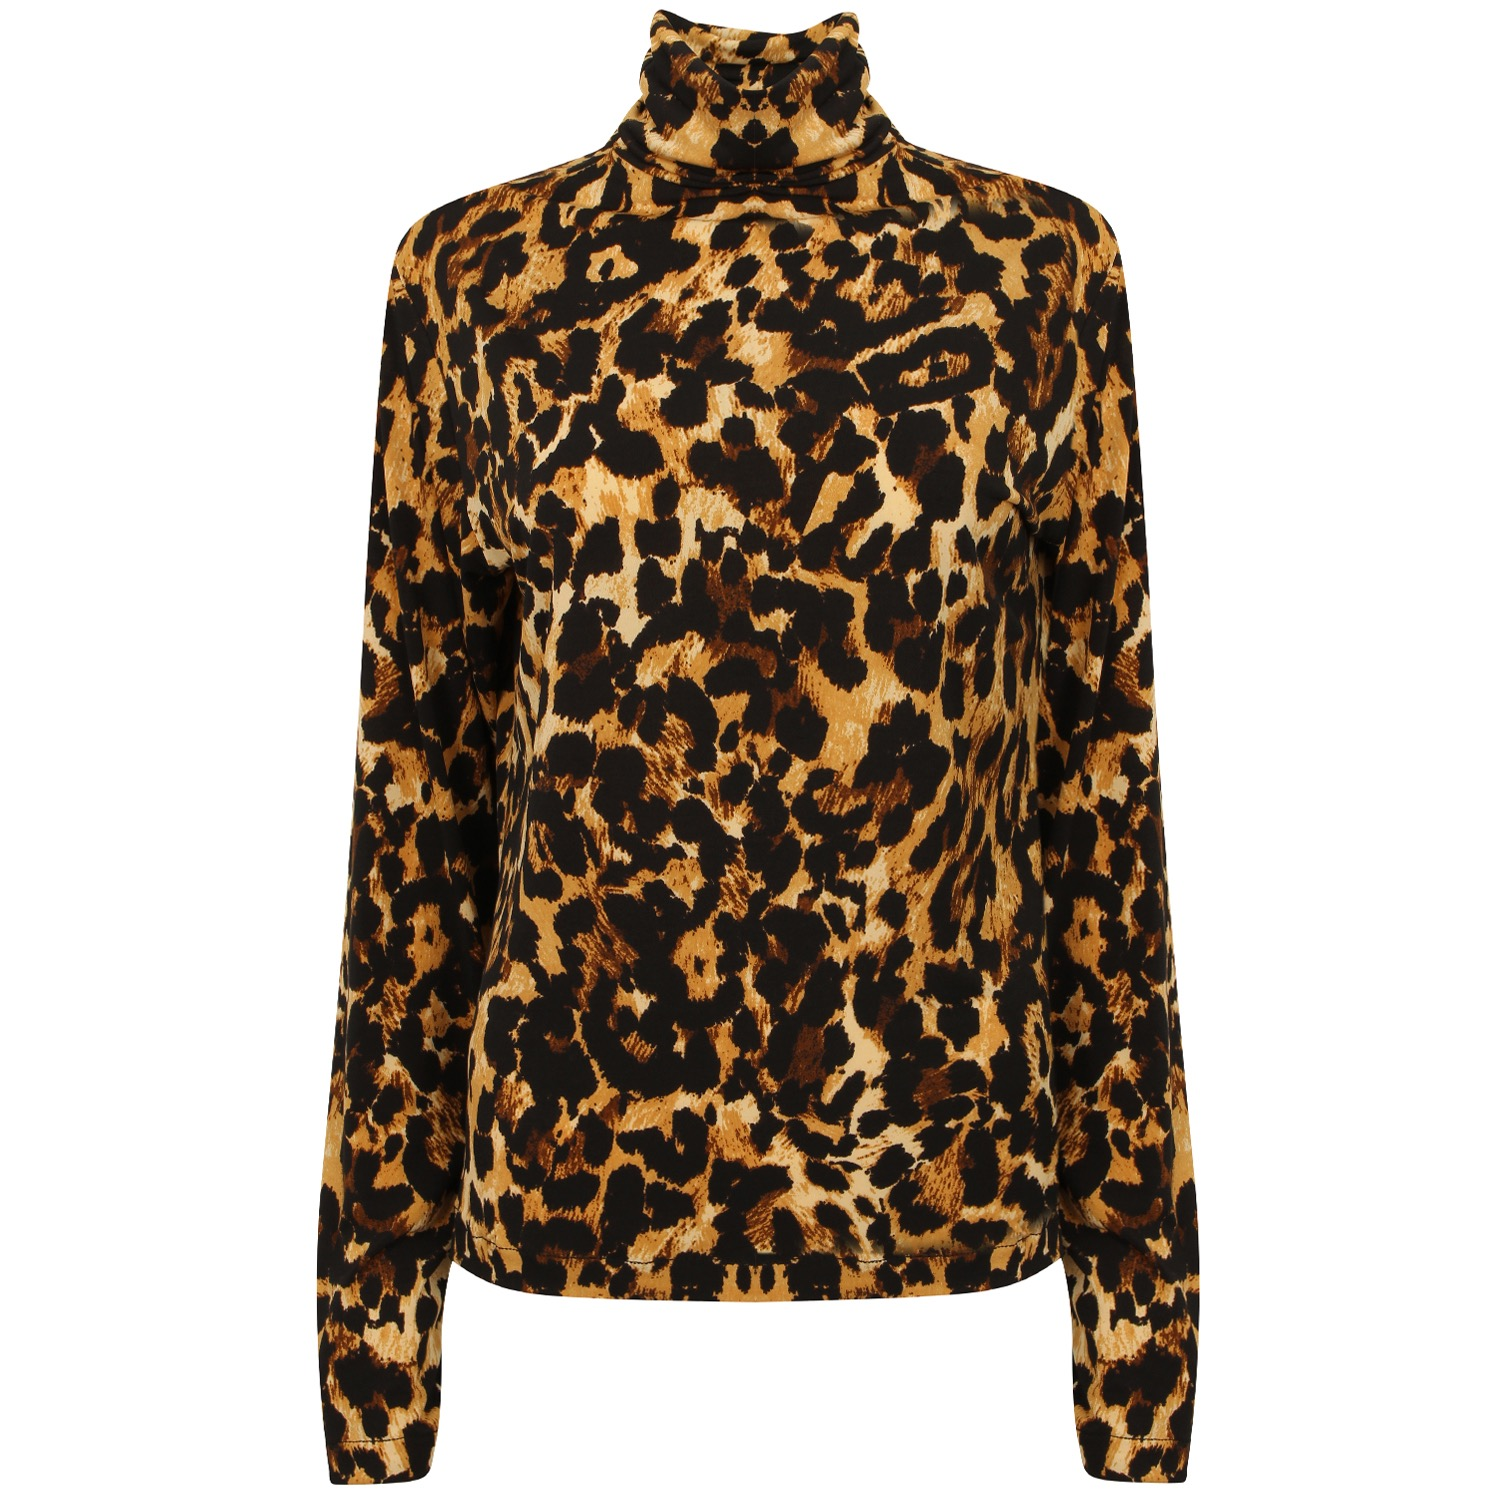 The Leopard Roll Neck